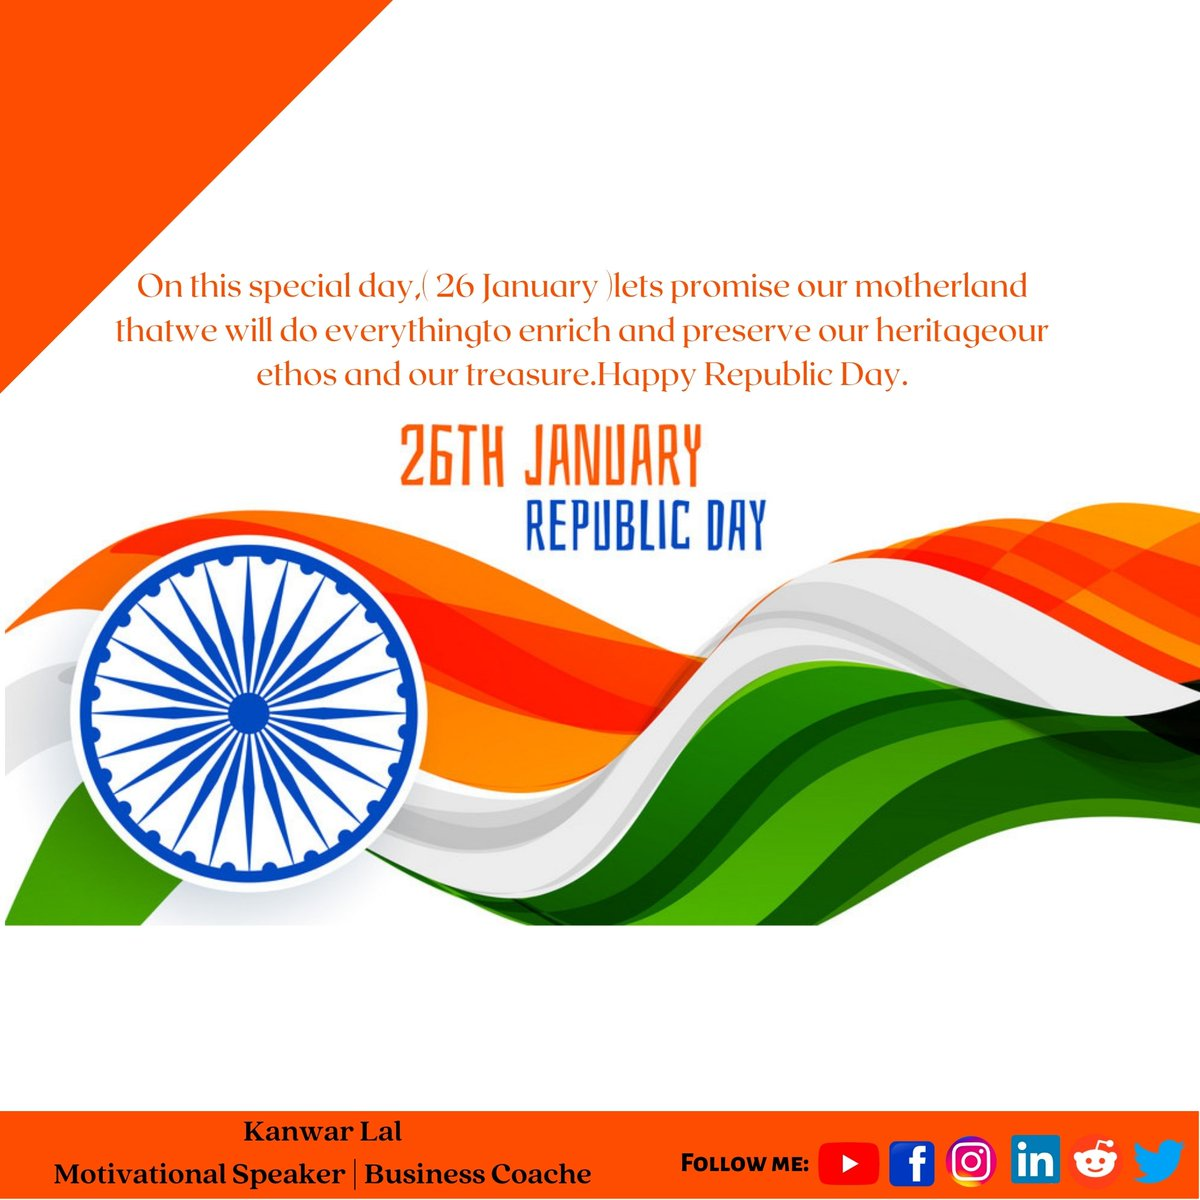 26th January I wish you a happy republic day. #kanwarlal #MotivationalQuotes #inspiration #MotivationalMonday #motivatinalspekaer #motivationalvideos